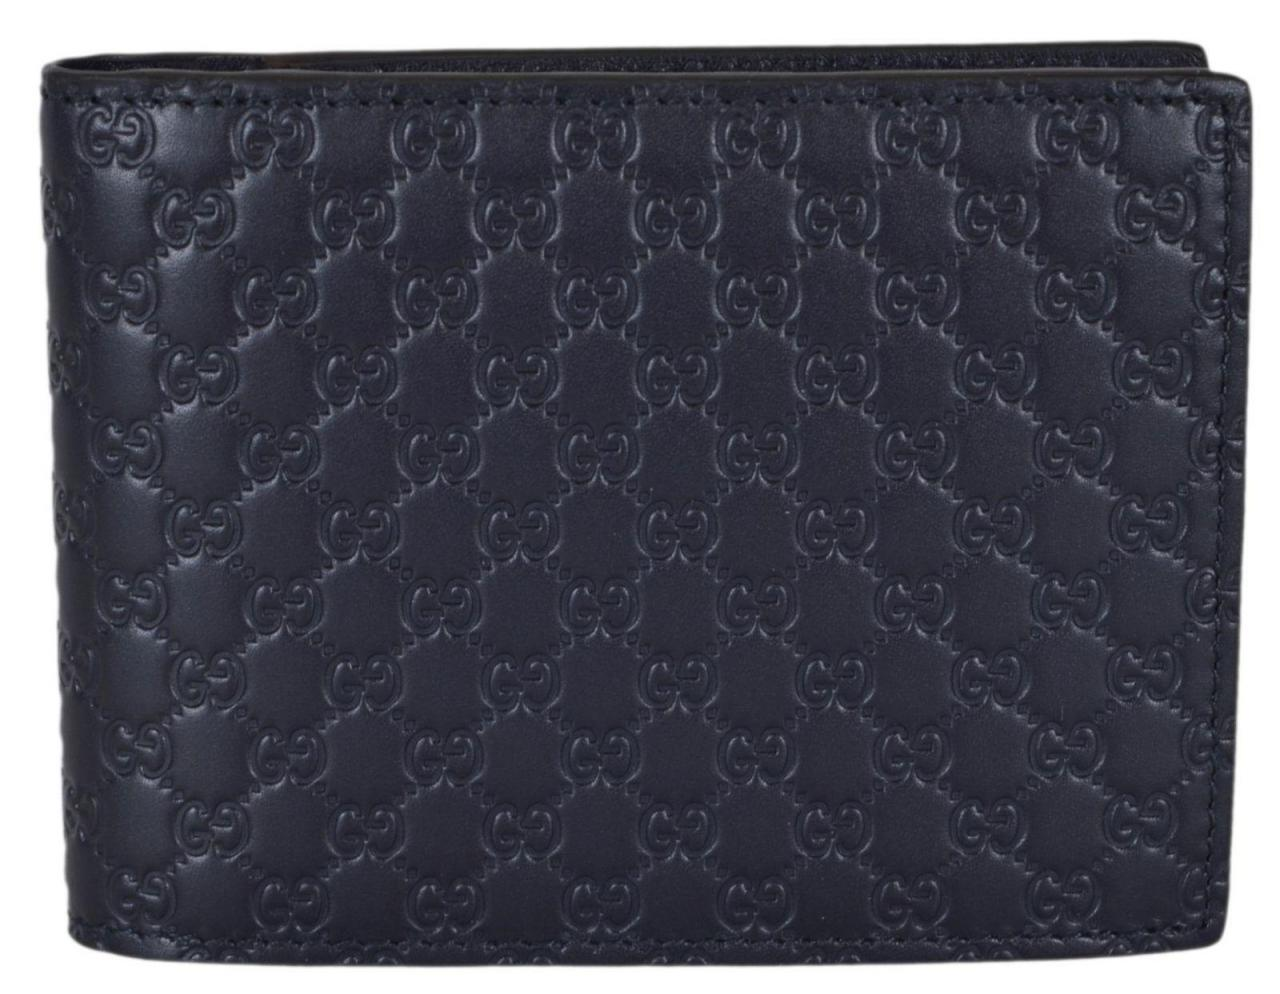 8d7d10d0802 From conventional wallets or a coin purse or something which covers just  the bare essentials